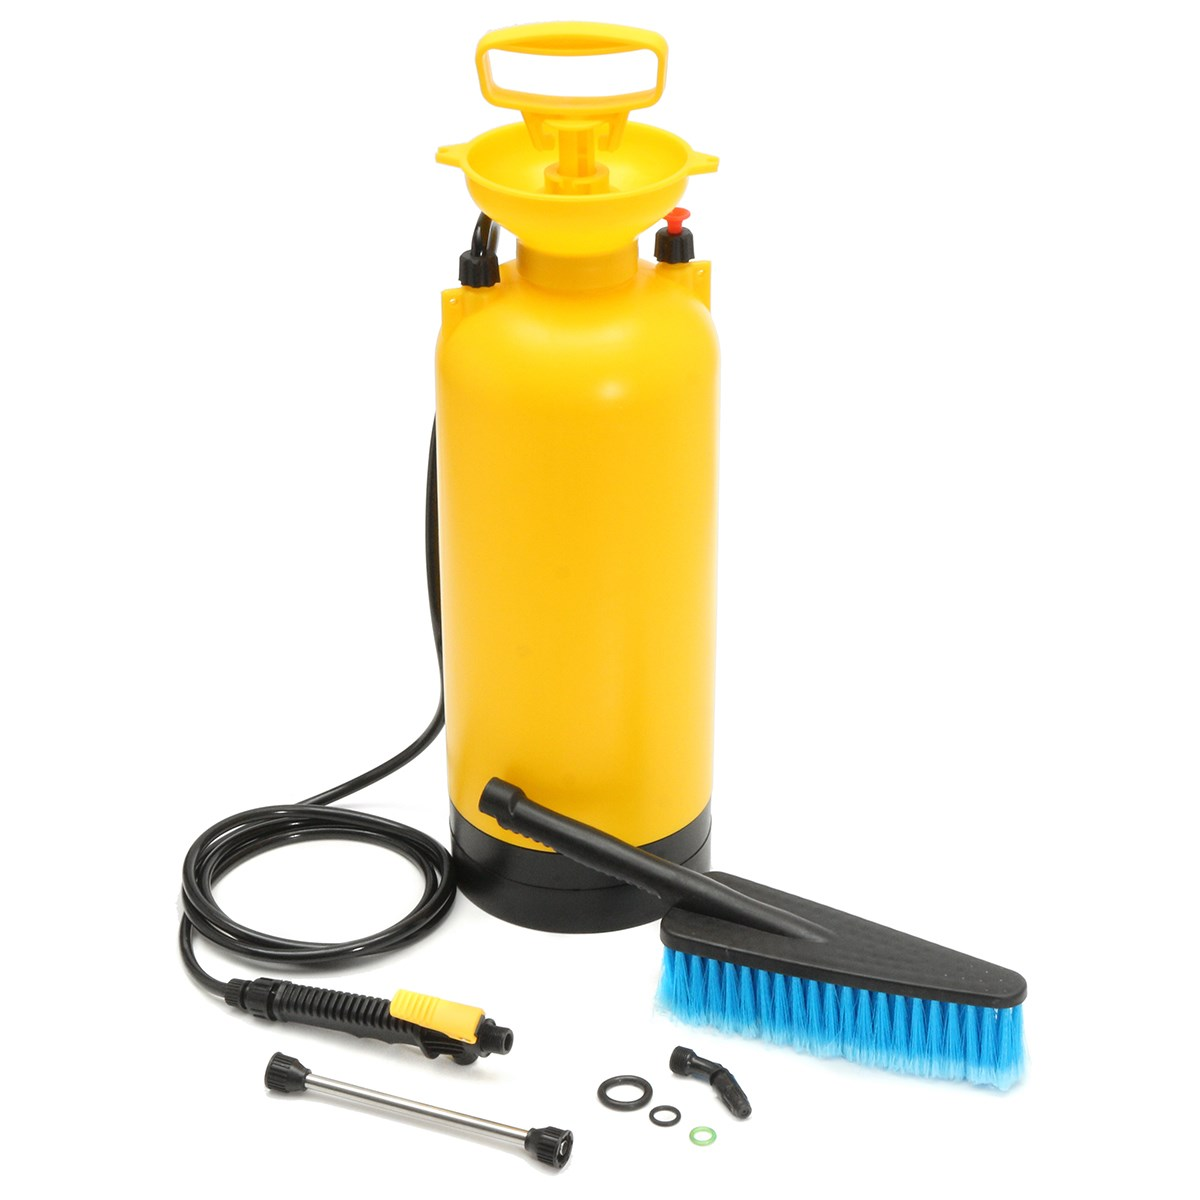 Aliexpress com buy convenient 8l portable pressure washer power pump spray car wash brush hose lance cleaner maintenance tool from reliable portable